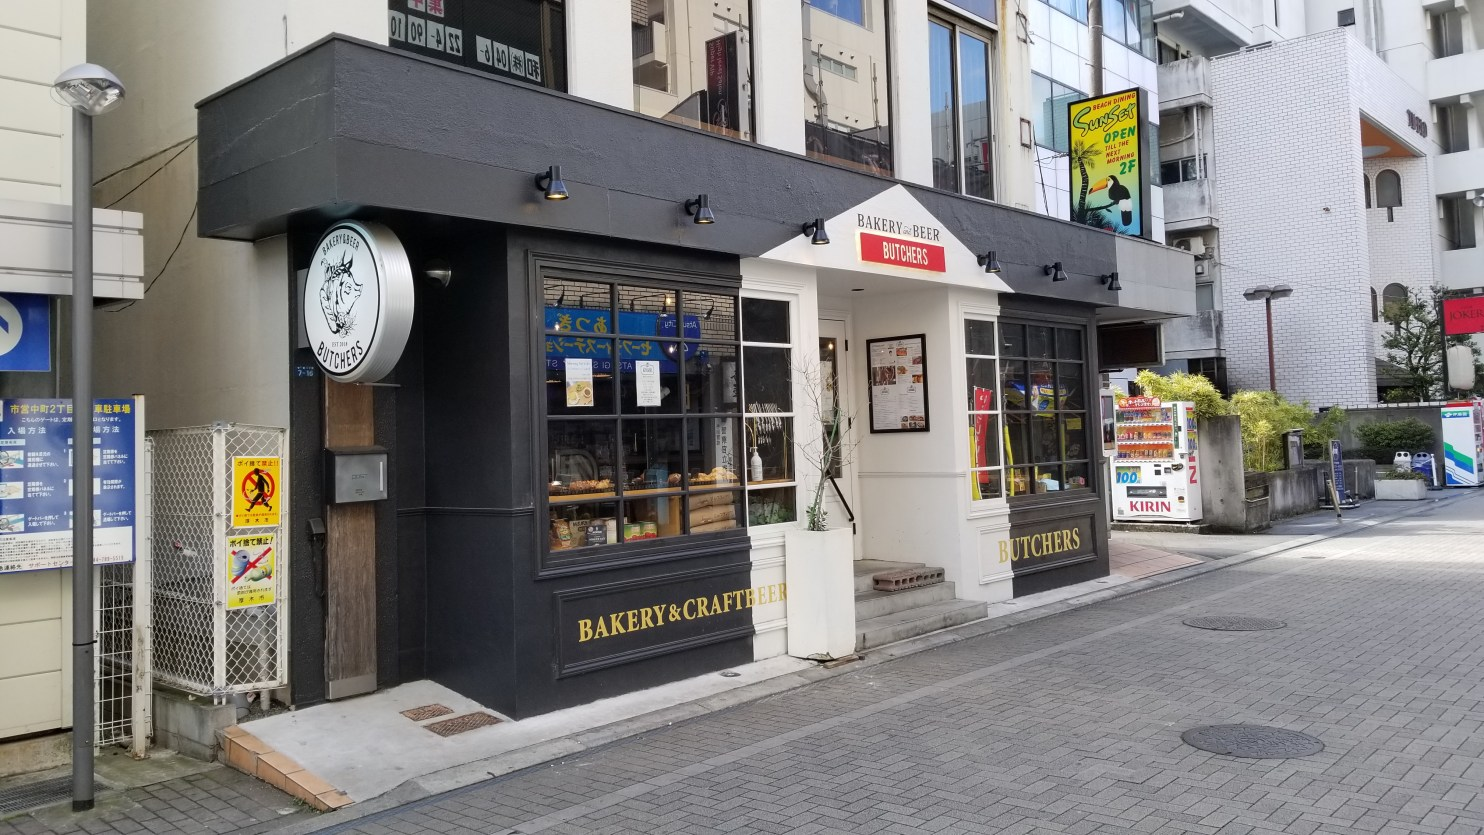 Bakery & Beer Butchers Front 1・ベーカリーアンドビアブッチャーズ店前1